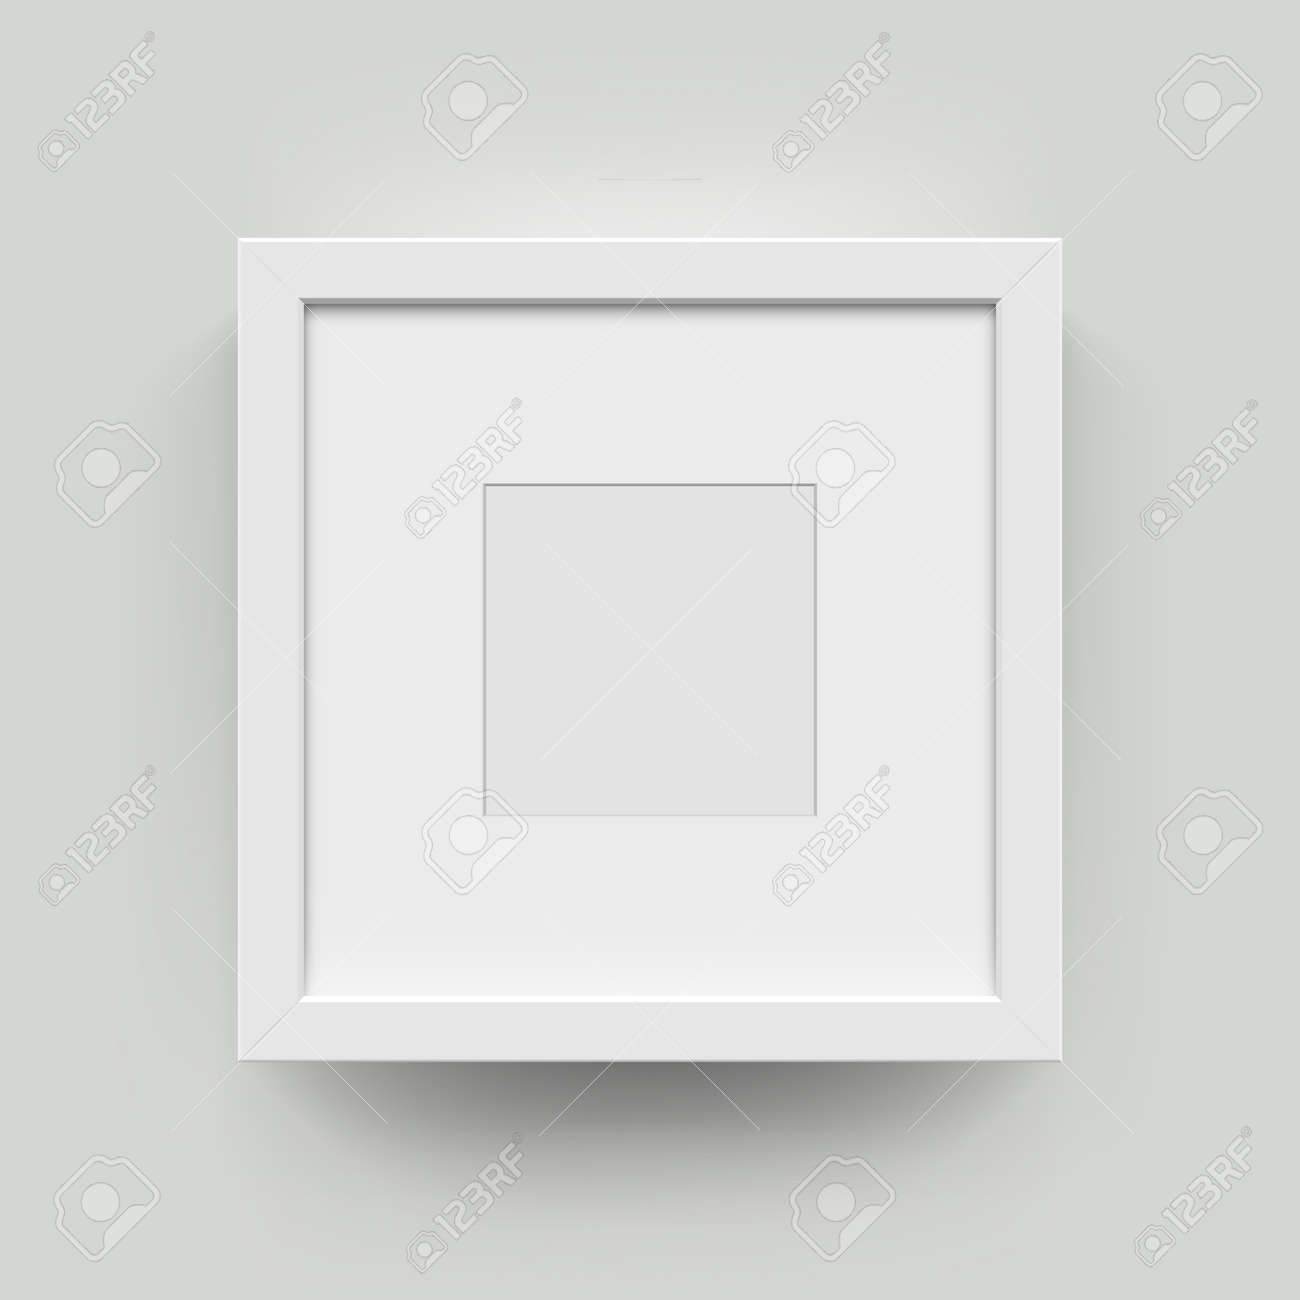 Square blank picture frame for photographs. Vector realisitc paper or plastic white picture-framing mat with wide borders shadow. Isolated picture frame mockup template on wall background - 61153380